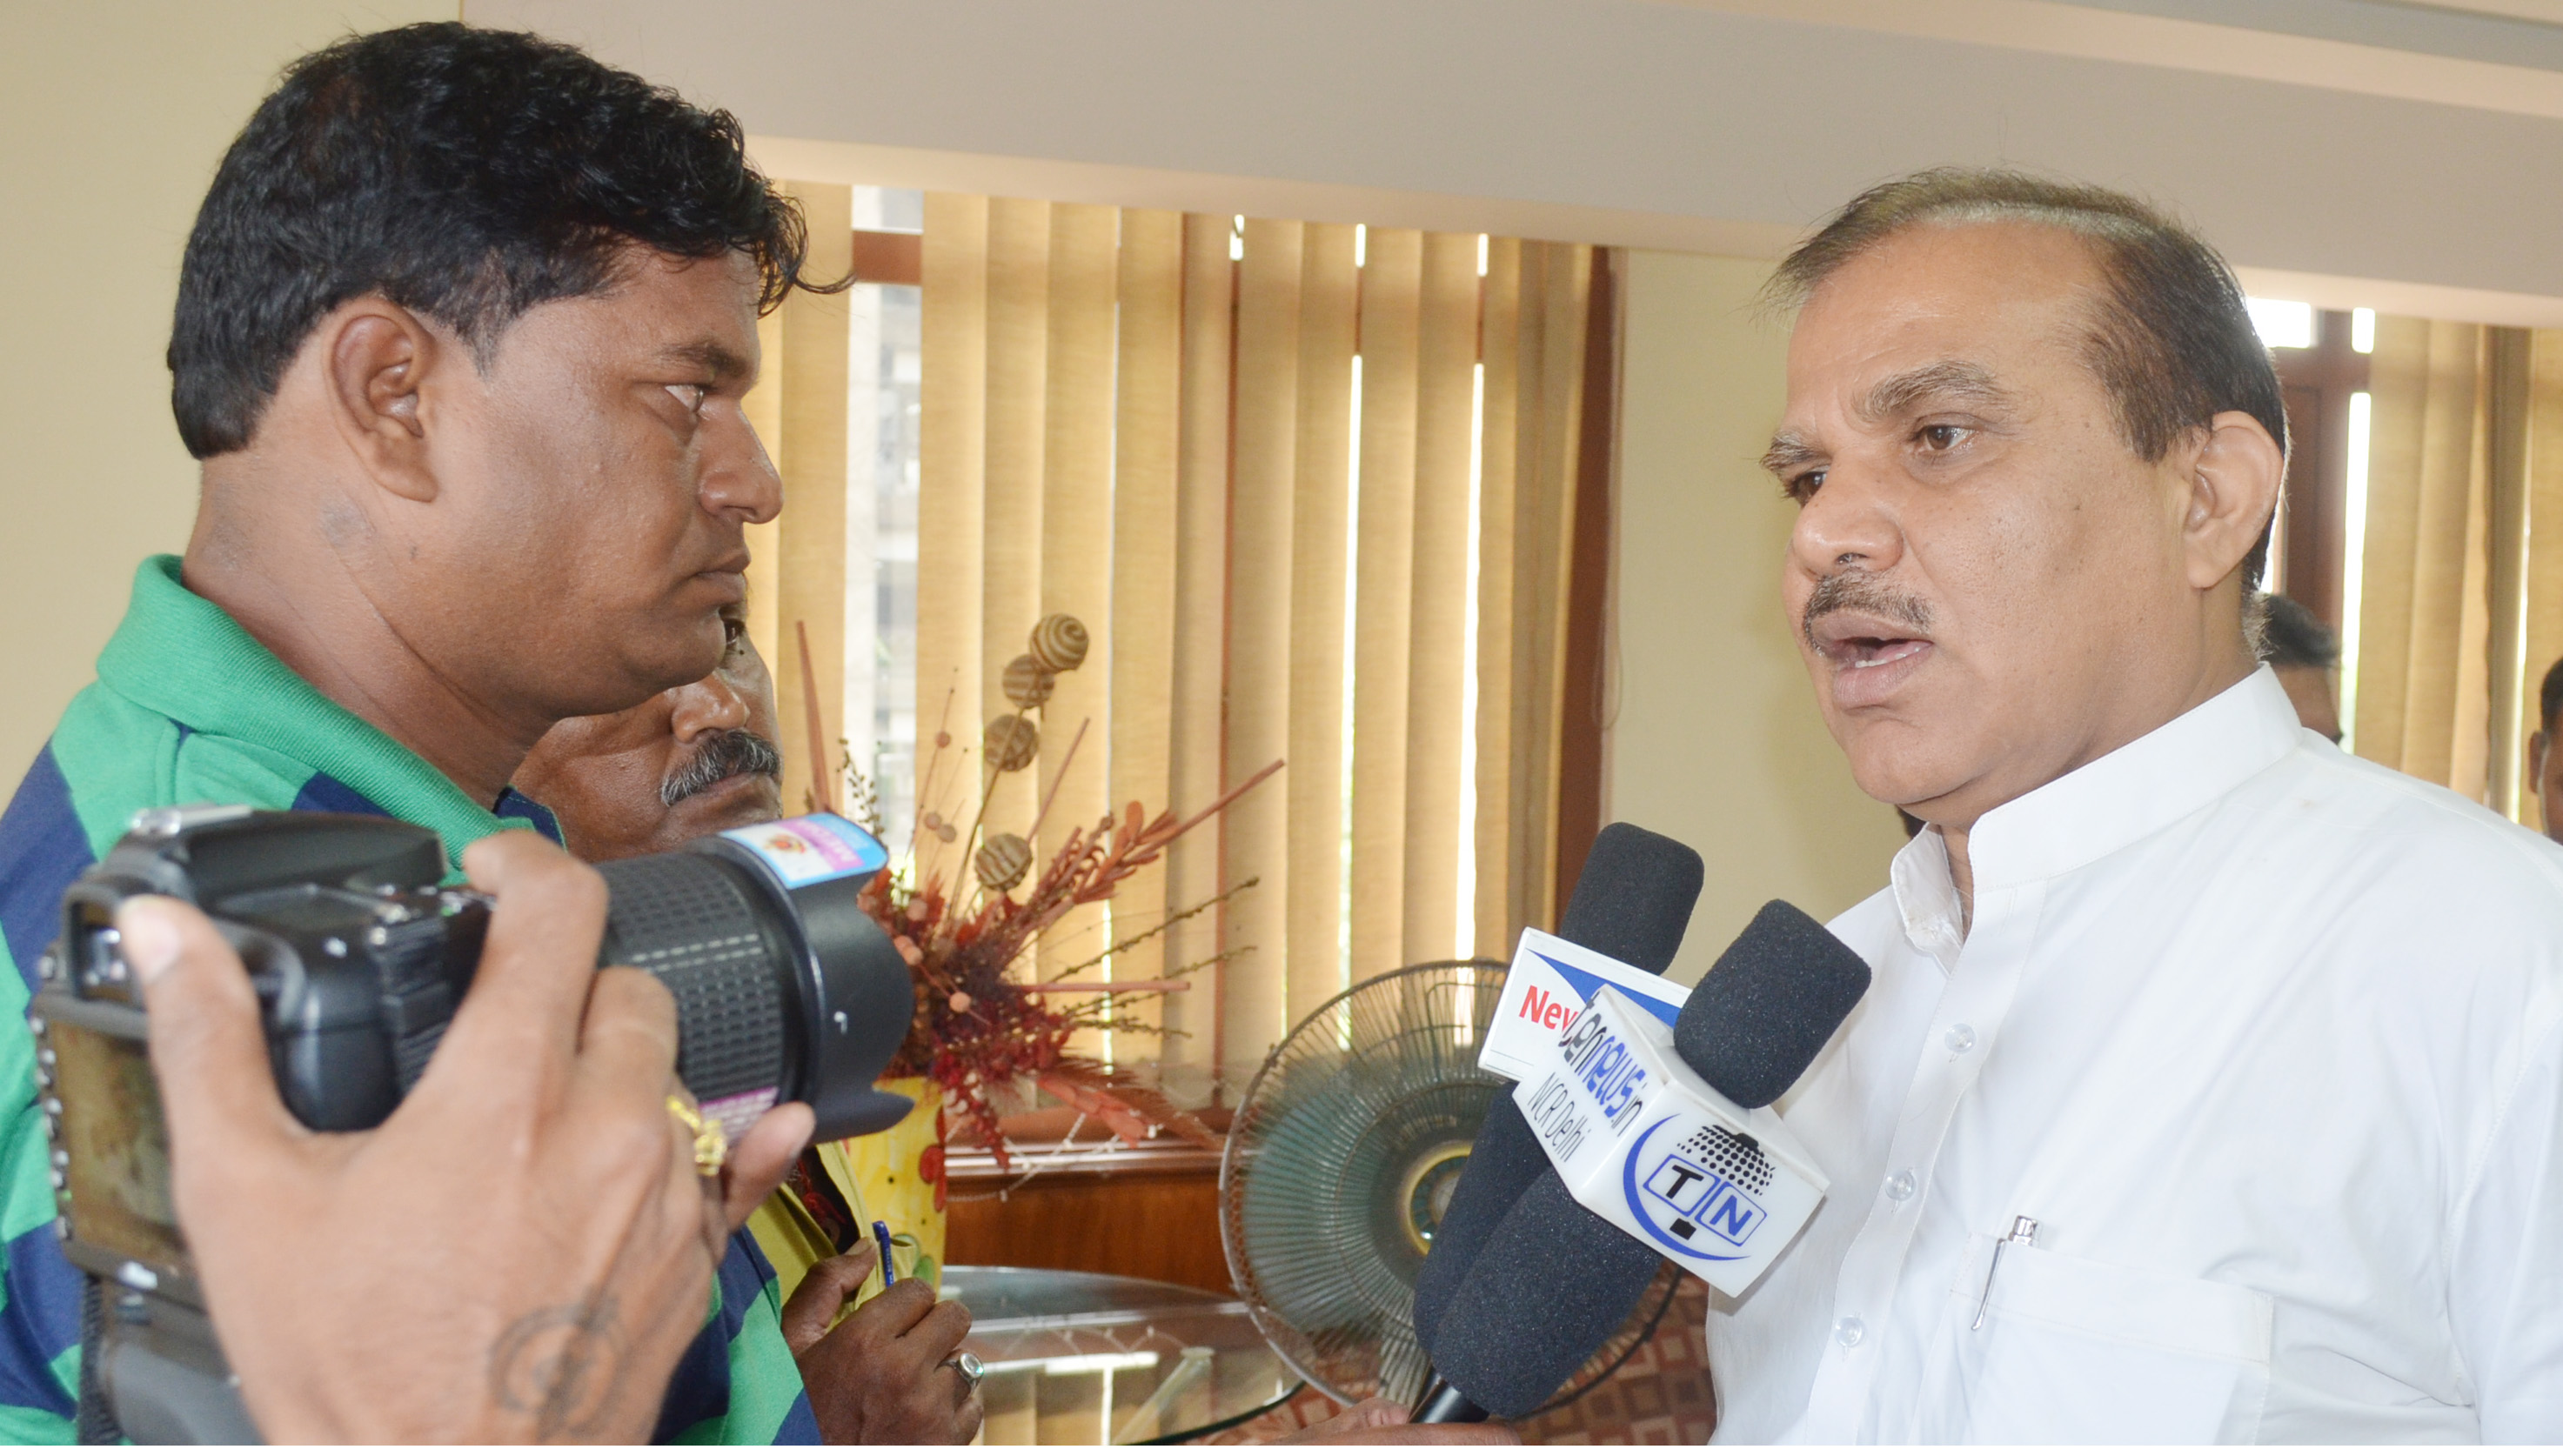 Co-ops alone can wipe tears: Chandra Pal